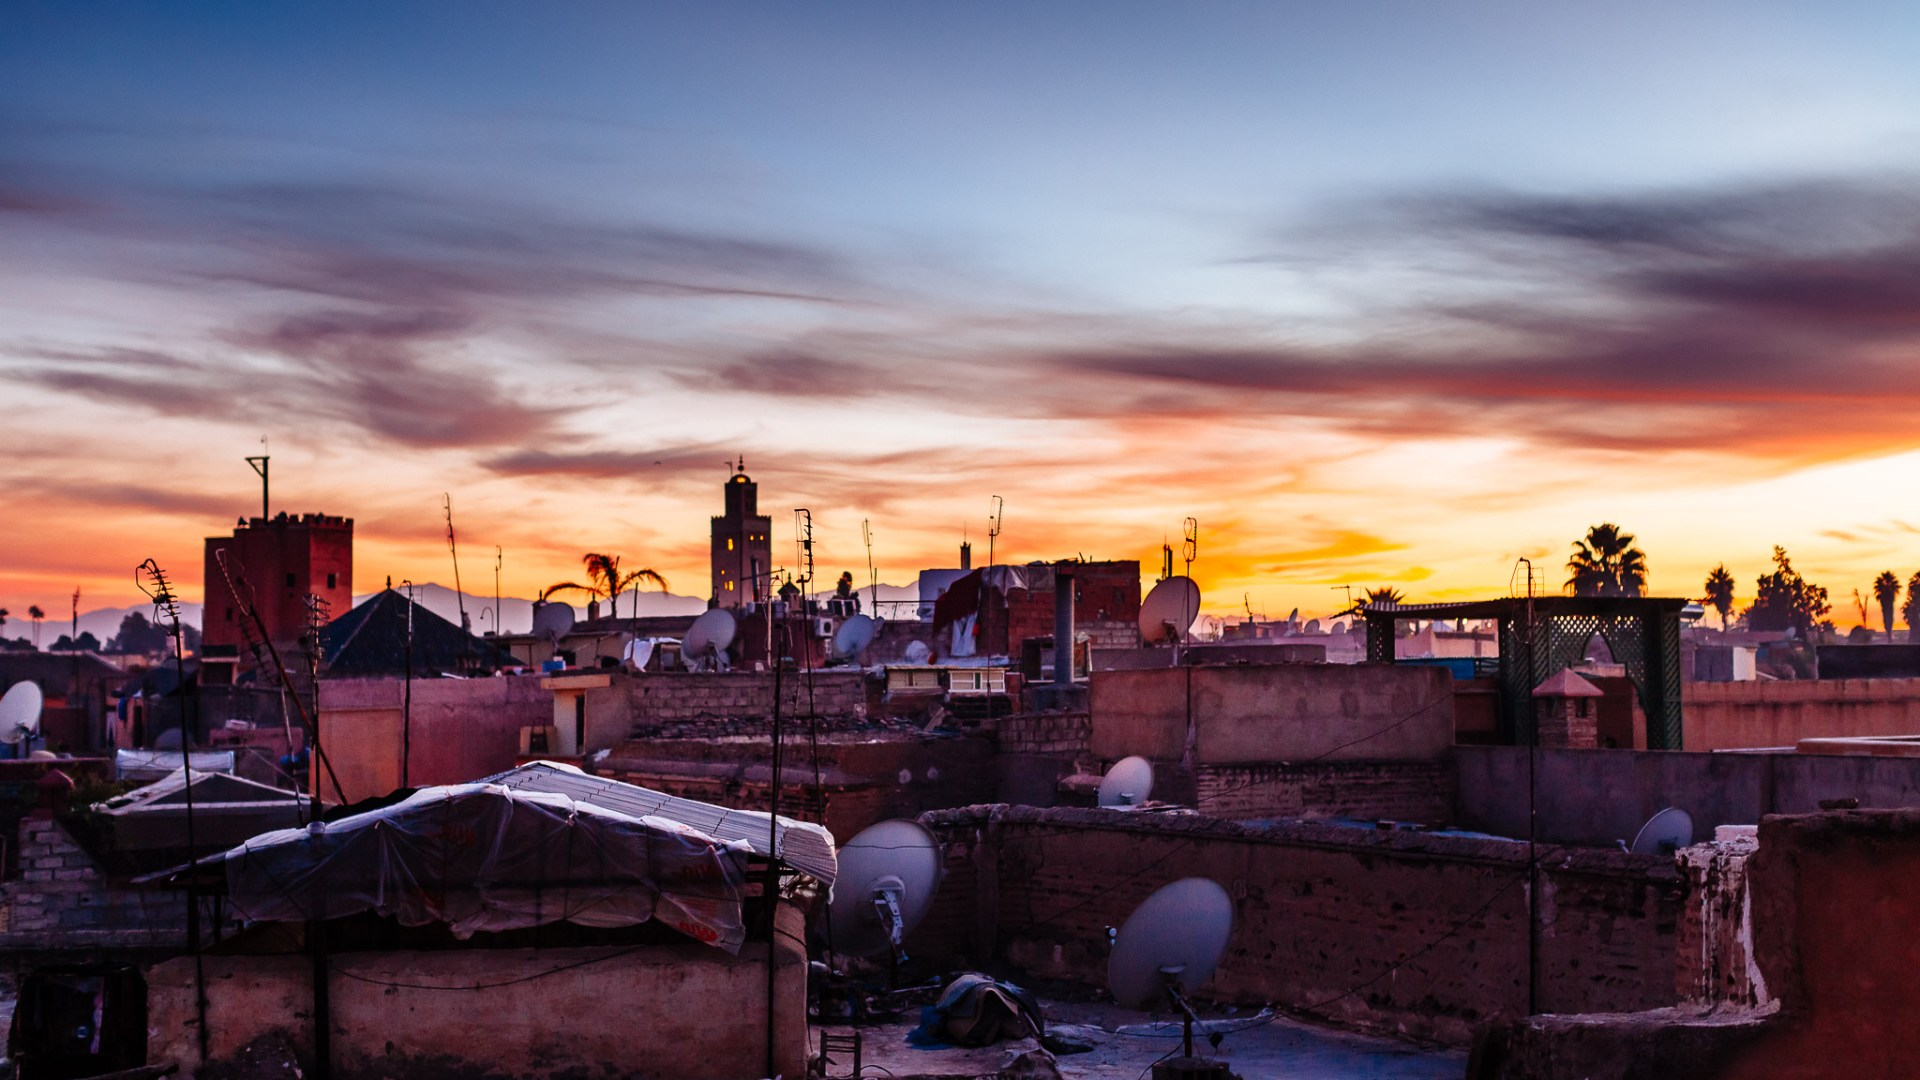 A photograph of rooftops in Marrakech at sunset shot from a balcony